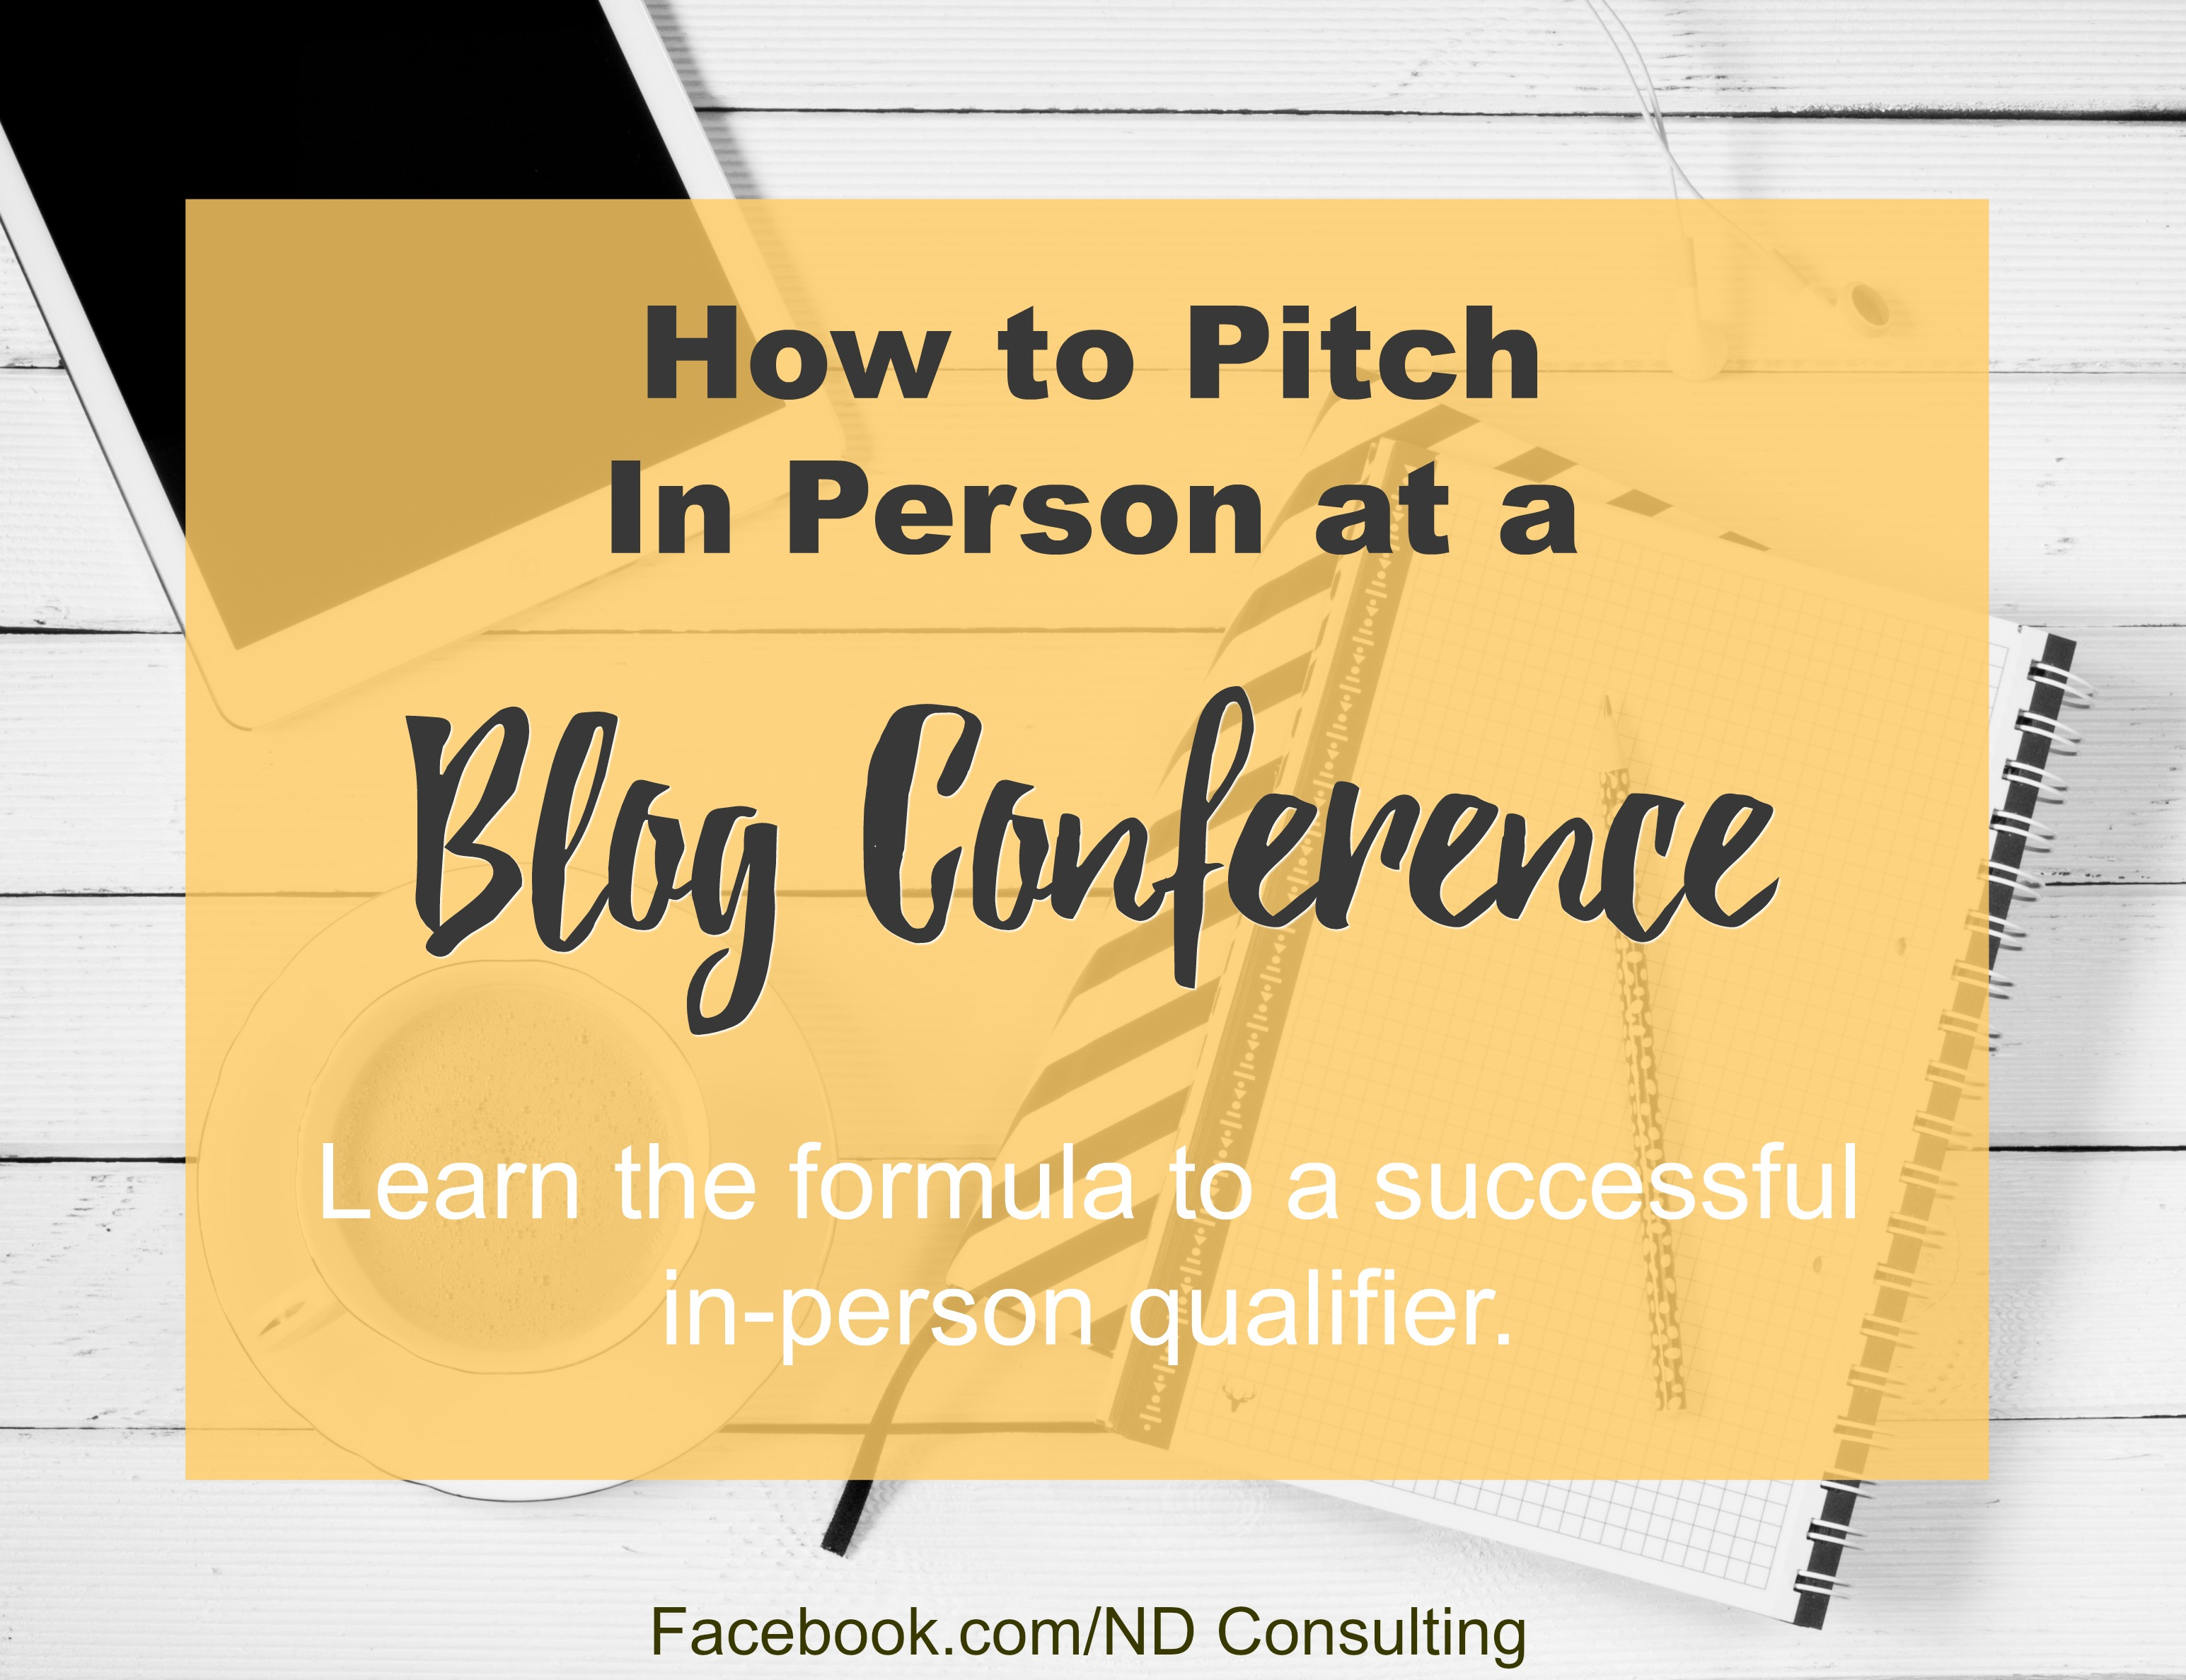 Grow confidence and find the right partner when you learn how to pitch a brand in person at a blog conference.